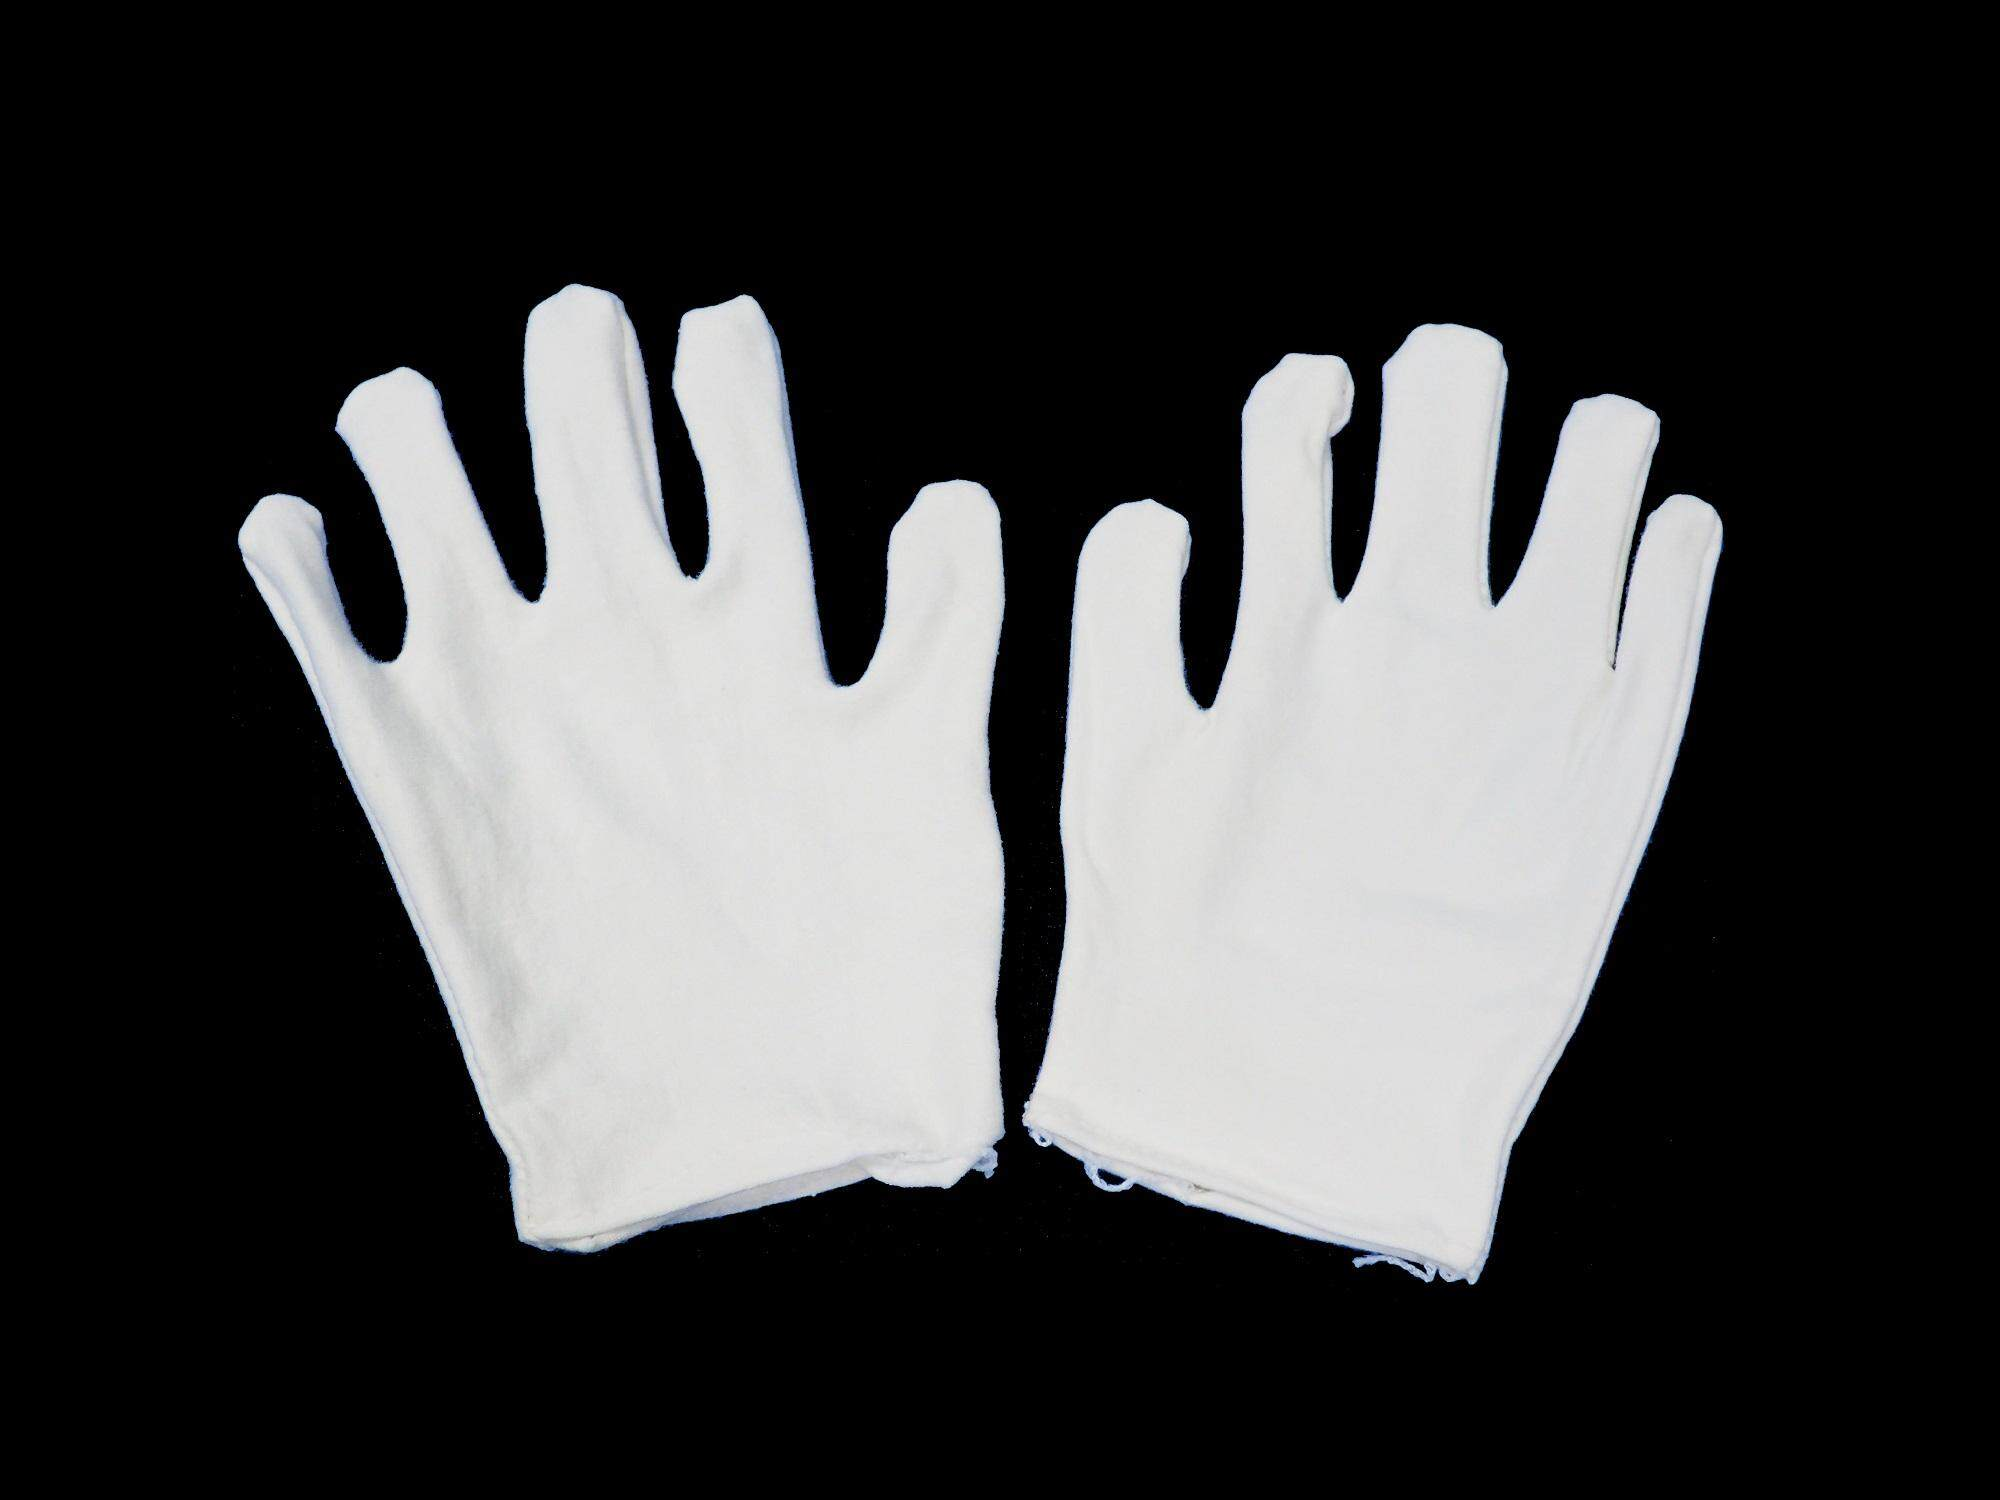 1 Pair White Cotton Glove for Jewellery / Watches / Antique Inspection